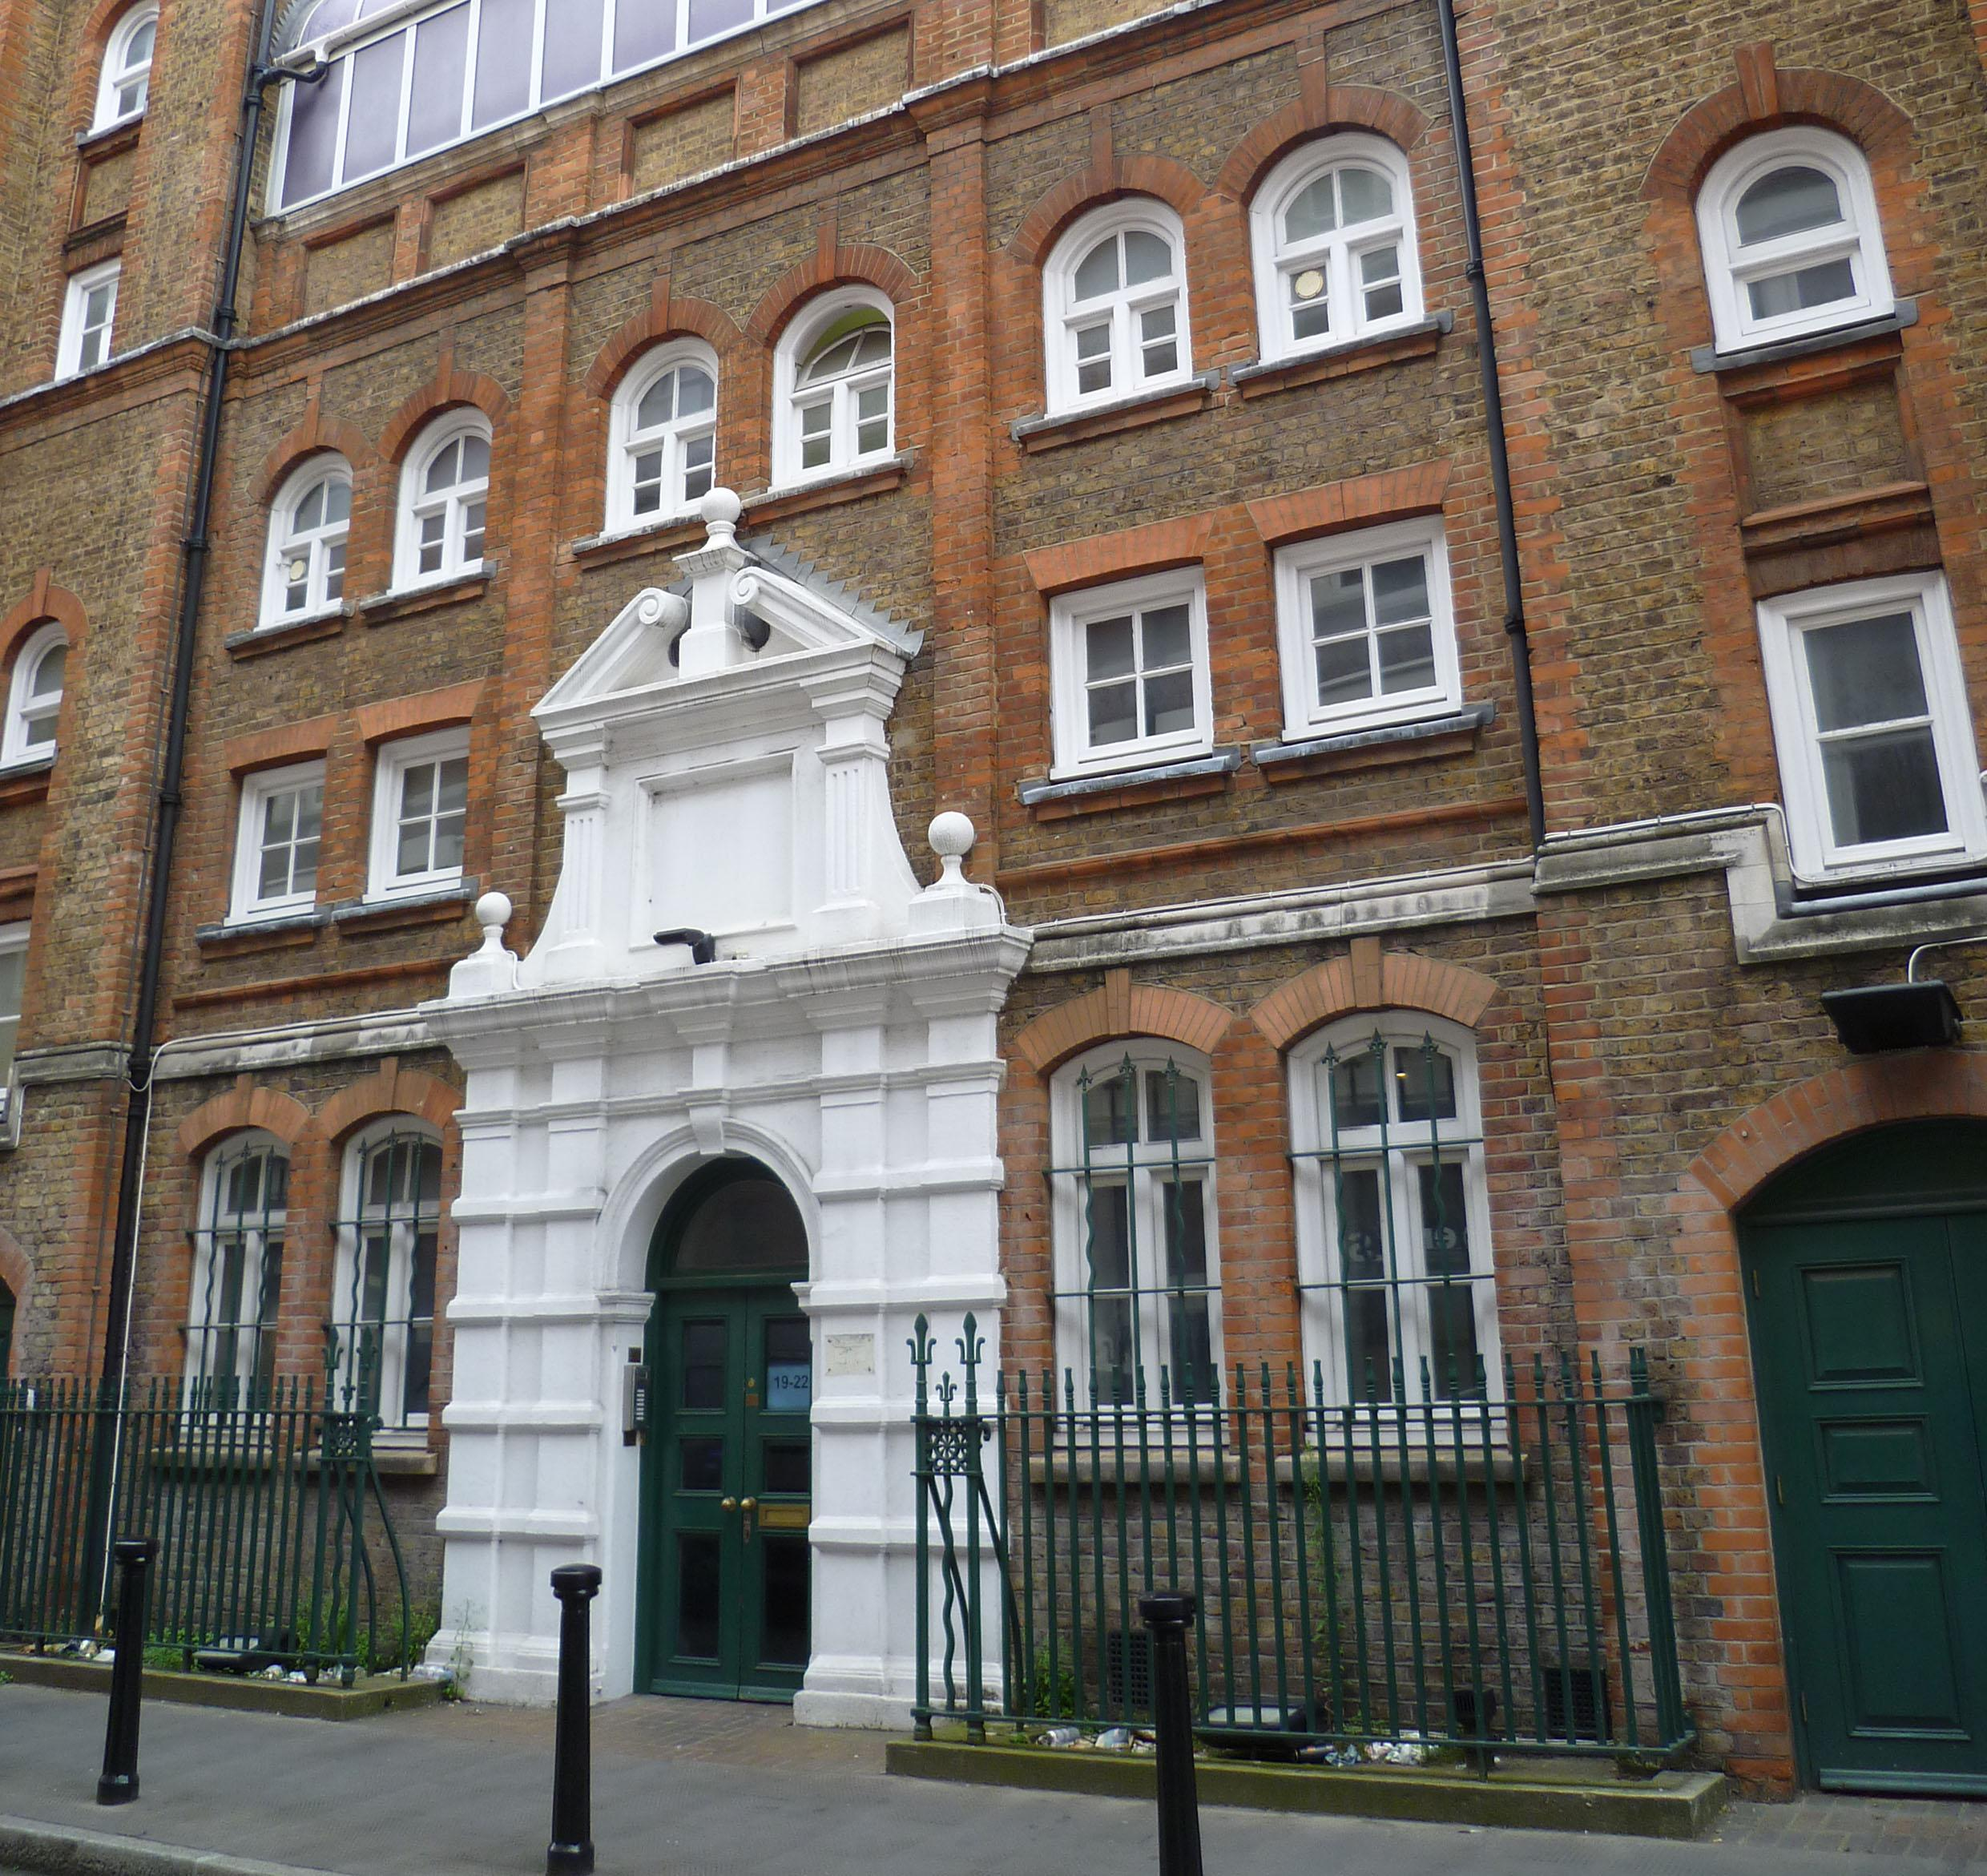 PTSG protects listed building in Covent Garden